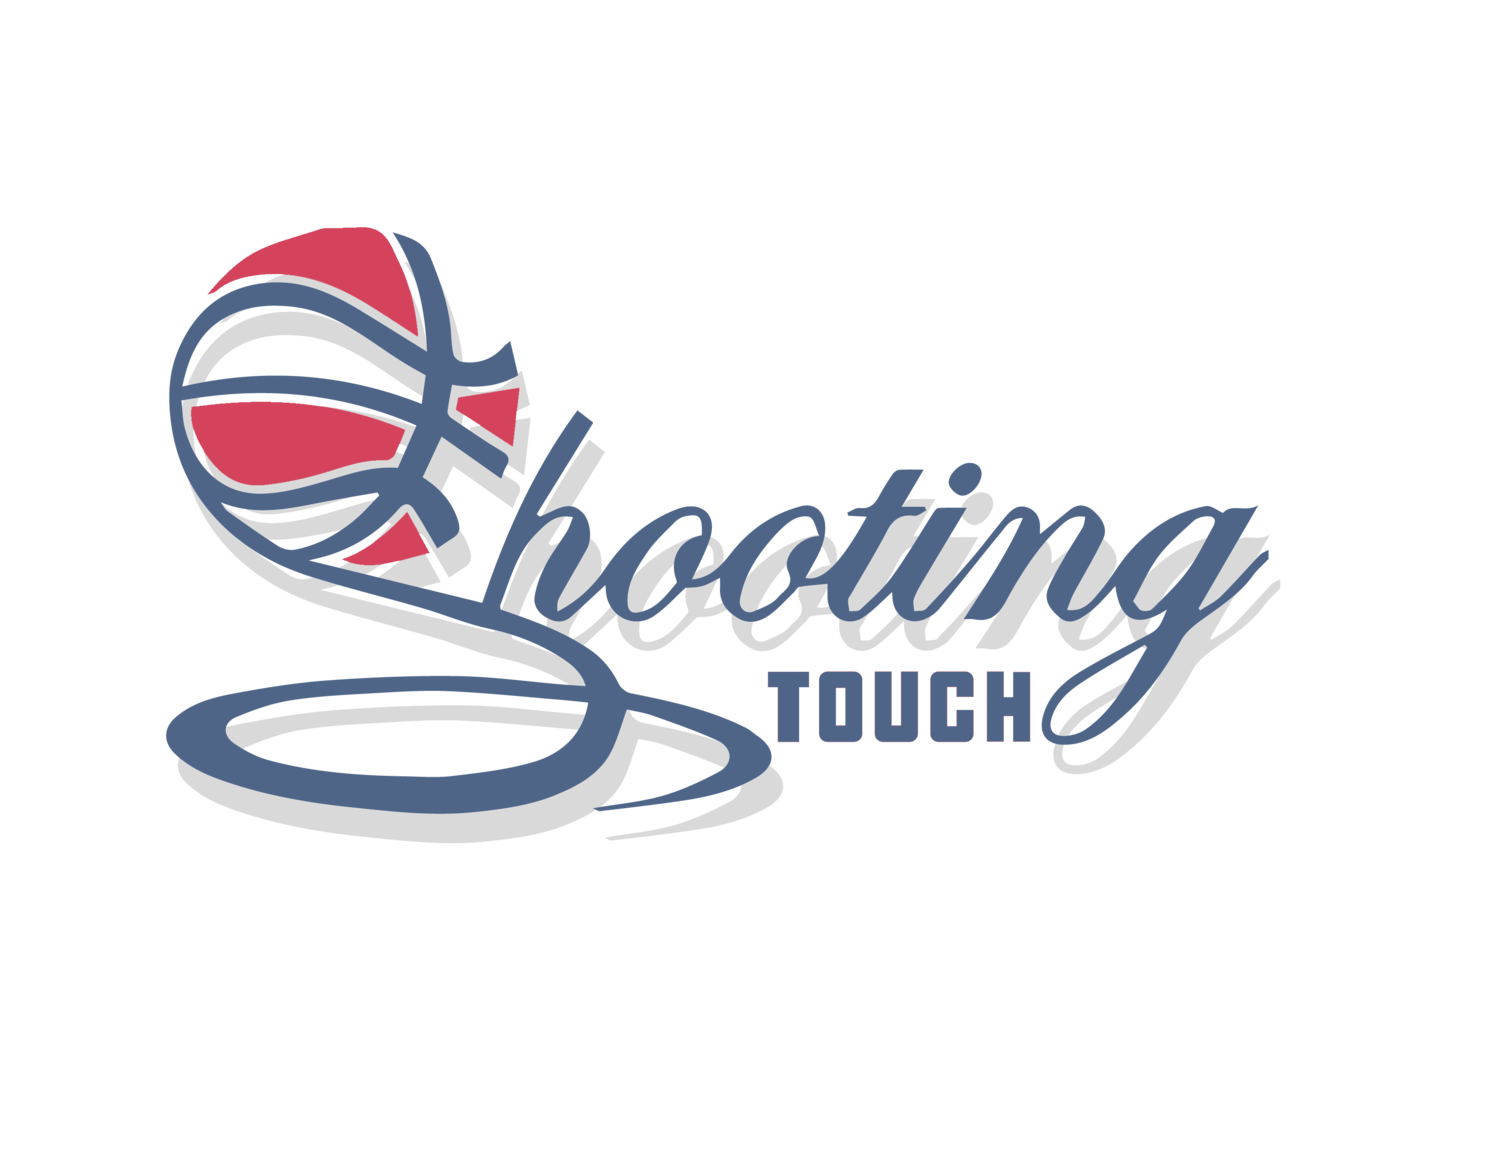 Shooting Touch